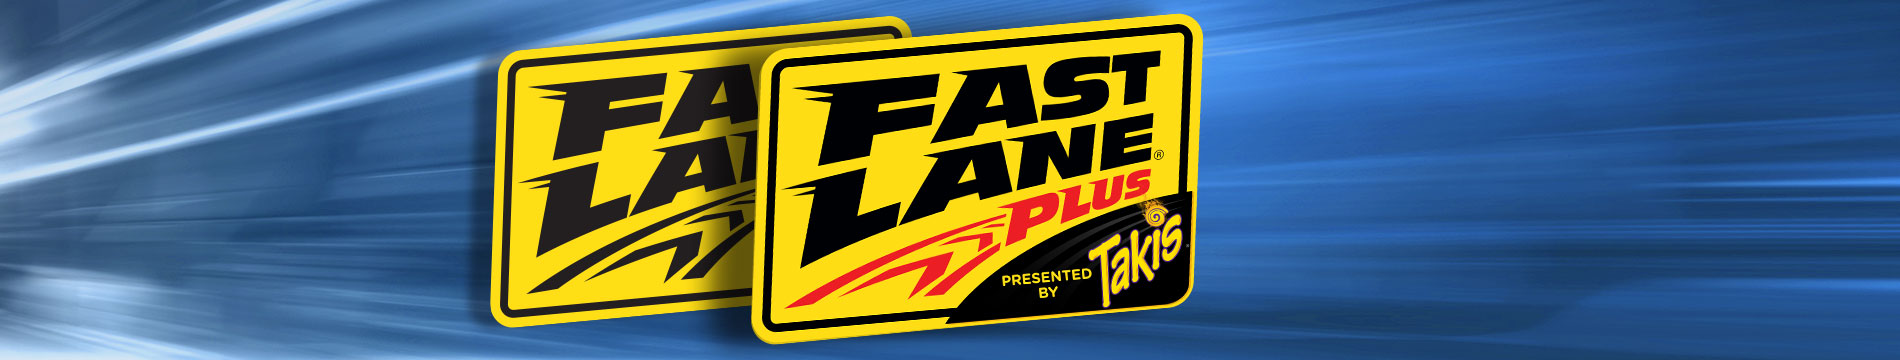 Upgrade to Fast Lane Plus and enjoy all of the Fast Lane attractions plus unlimited rides on Steel Vengeance, Valravn, Maverick, Top Thrill Dragster and Gatekeeper! A very limited number are available each day so buy yours today! Park admission and Fright Lane attractions not included.